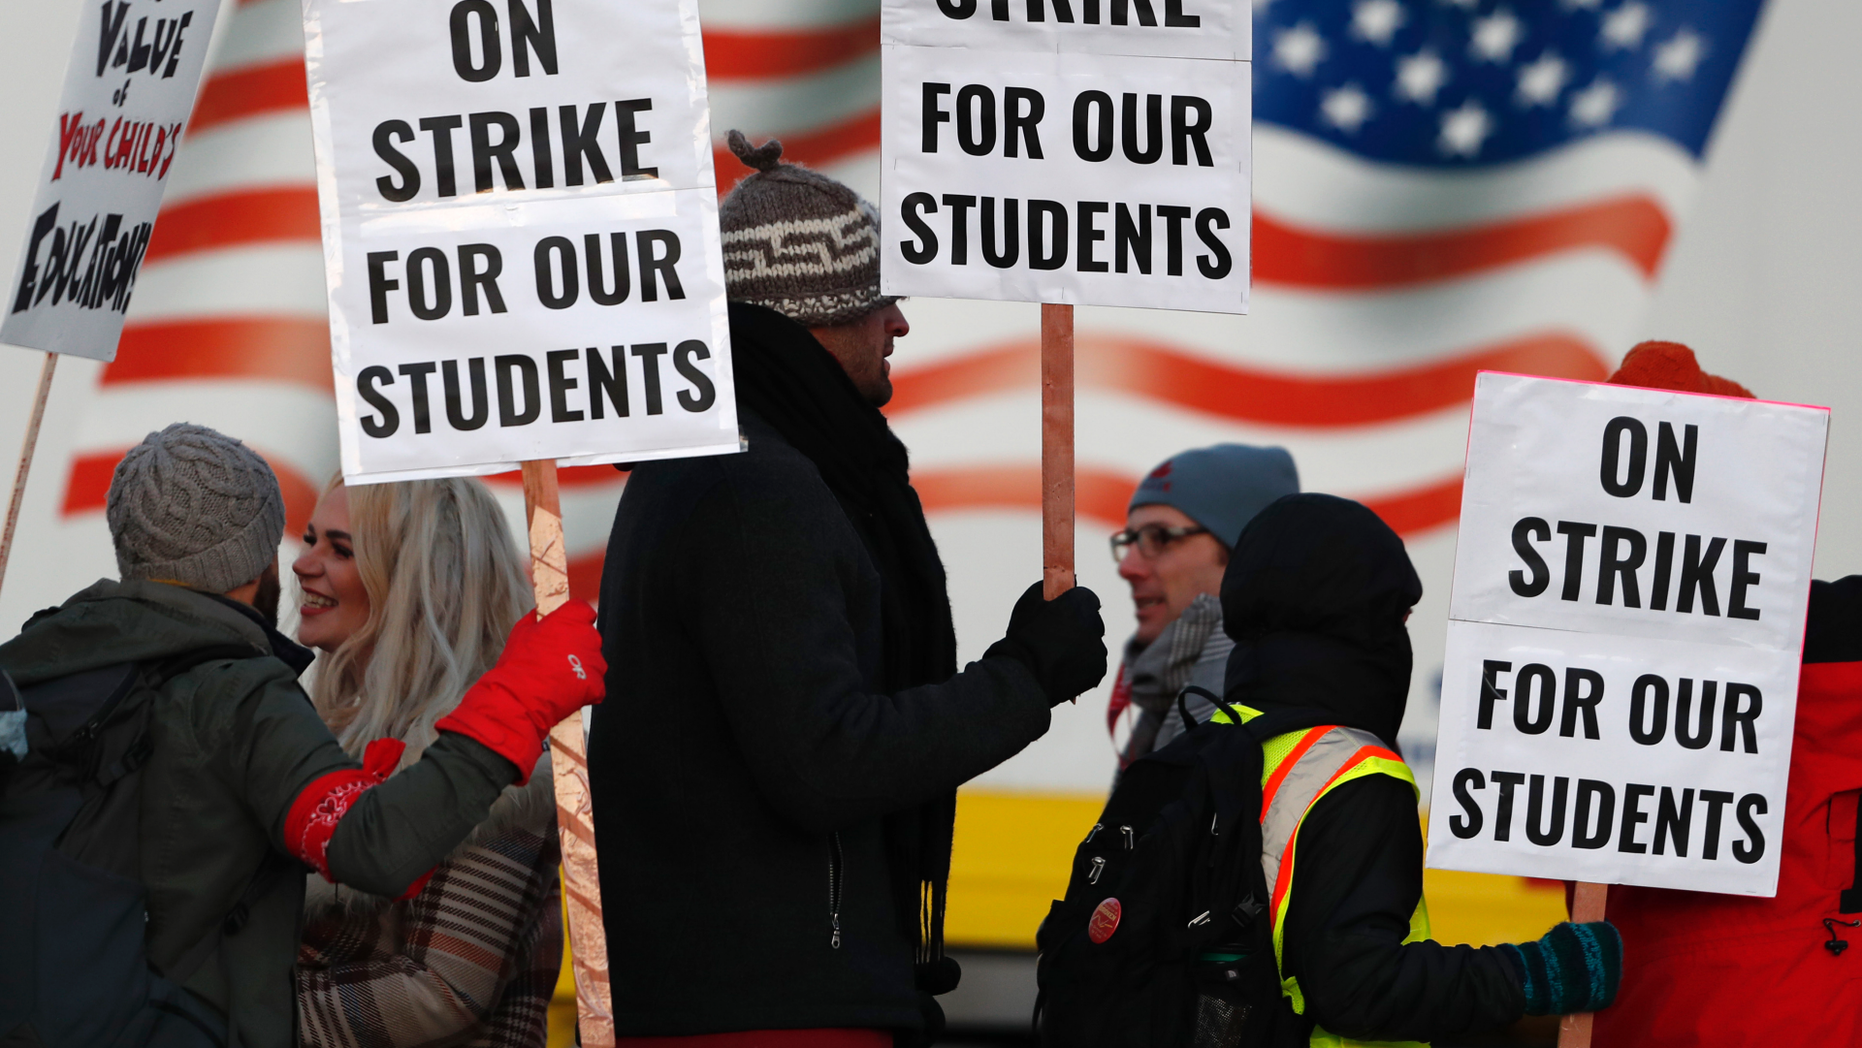 Teachers carry placards as they walk a picket line outside South High School early Monday, Feb. 11, 2019, in Denver. The strike on Monday is the first for teachers in Colorado in 25 years after failed negotiations with the school district over base pay. (AP Photo/David Zalubowski)